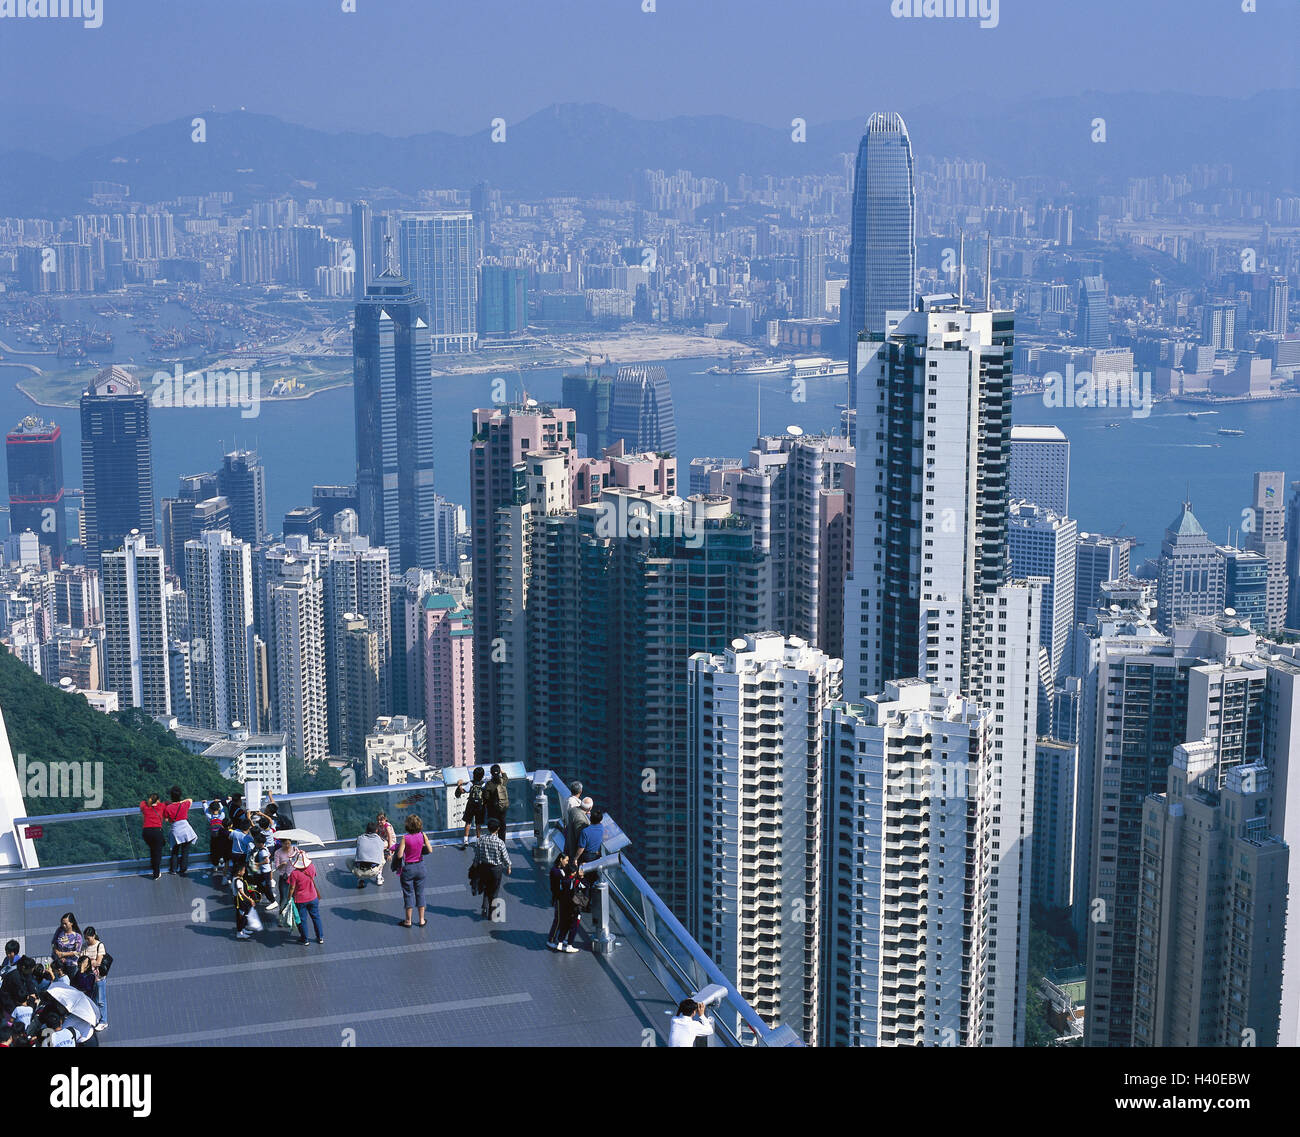 City of Hong Kong - the capital of which country 62